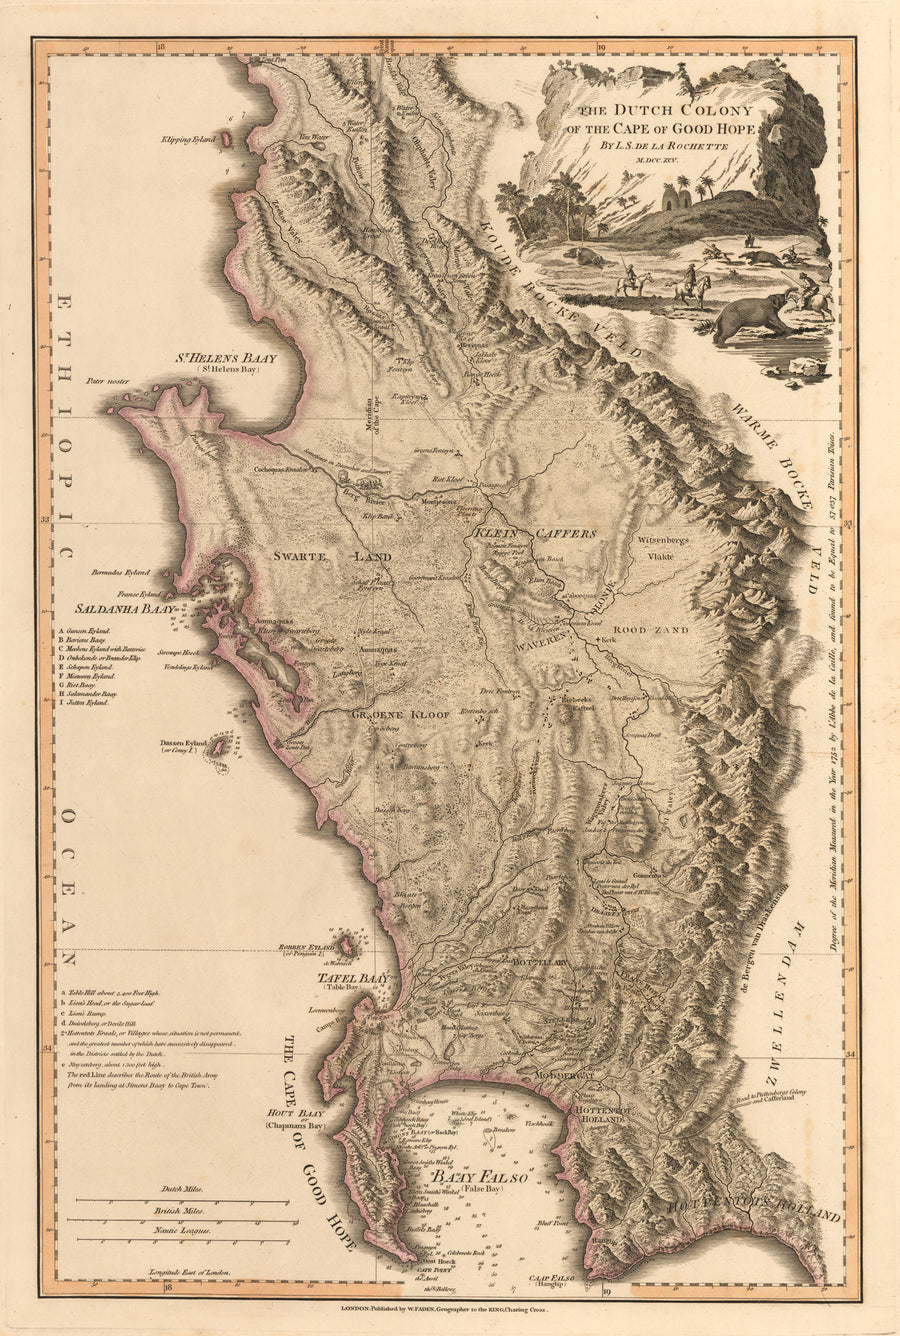 The Dutch Colony of the Cape of Good Hope By: William Faden Date: 1795